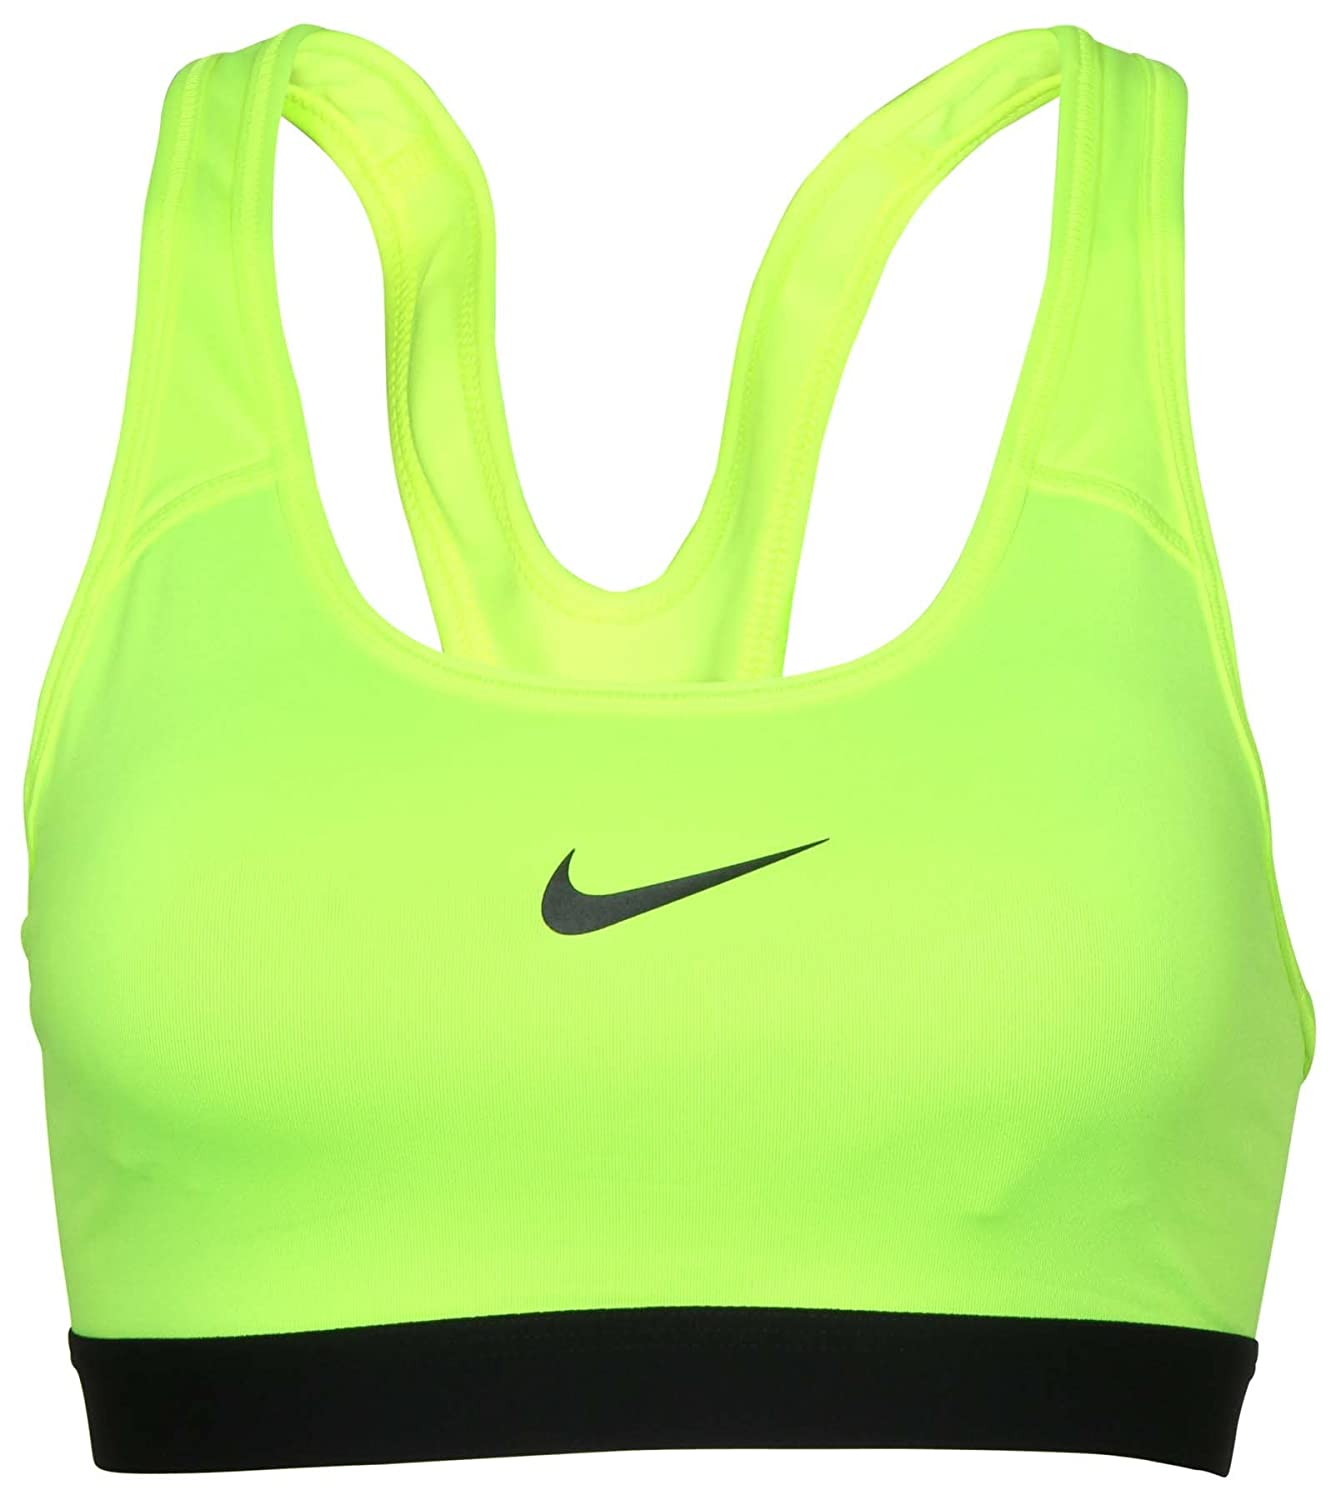 154b2c2098 100% Polyester Authentic Nike 88% Polyester  12% Spandex Dri-Fit Fabric  Light Support Machine wash